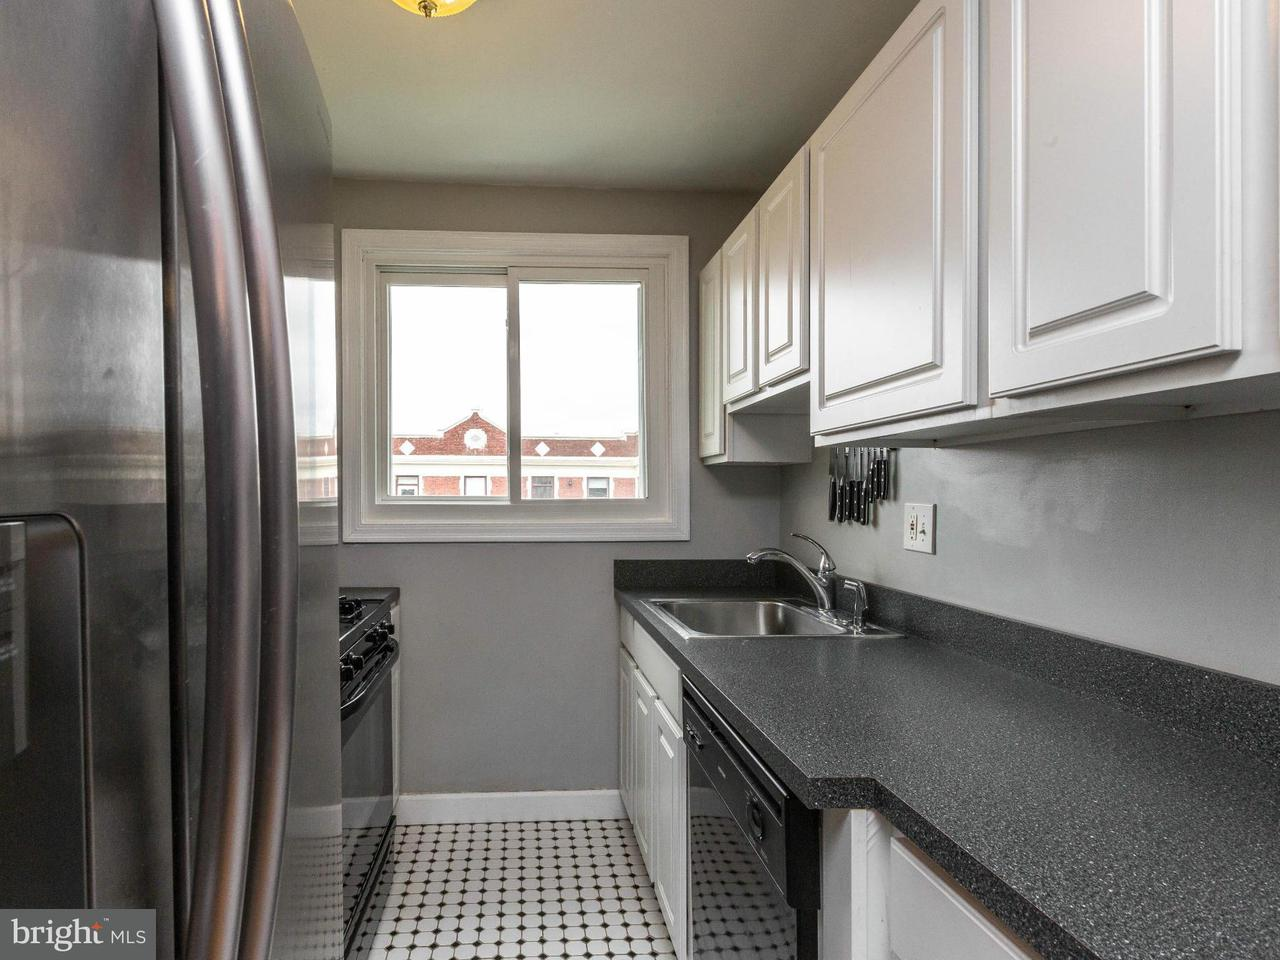 Additional photo for property listing at 1420 CLIFTON ST NW #401 1420 CLIFTON ST NW #401 Washington, District Of Columbia 20009 United States